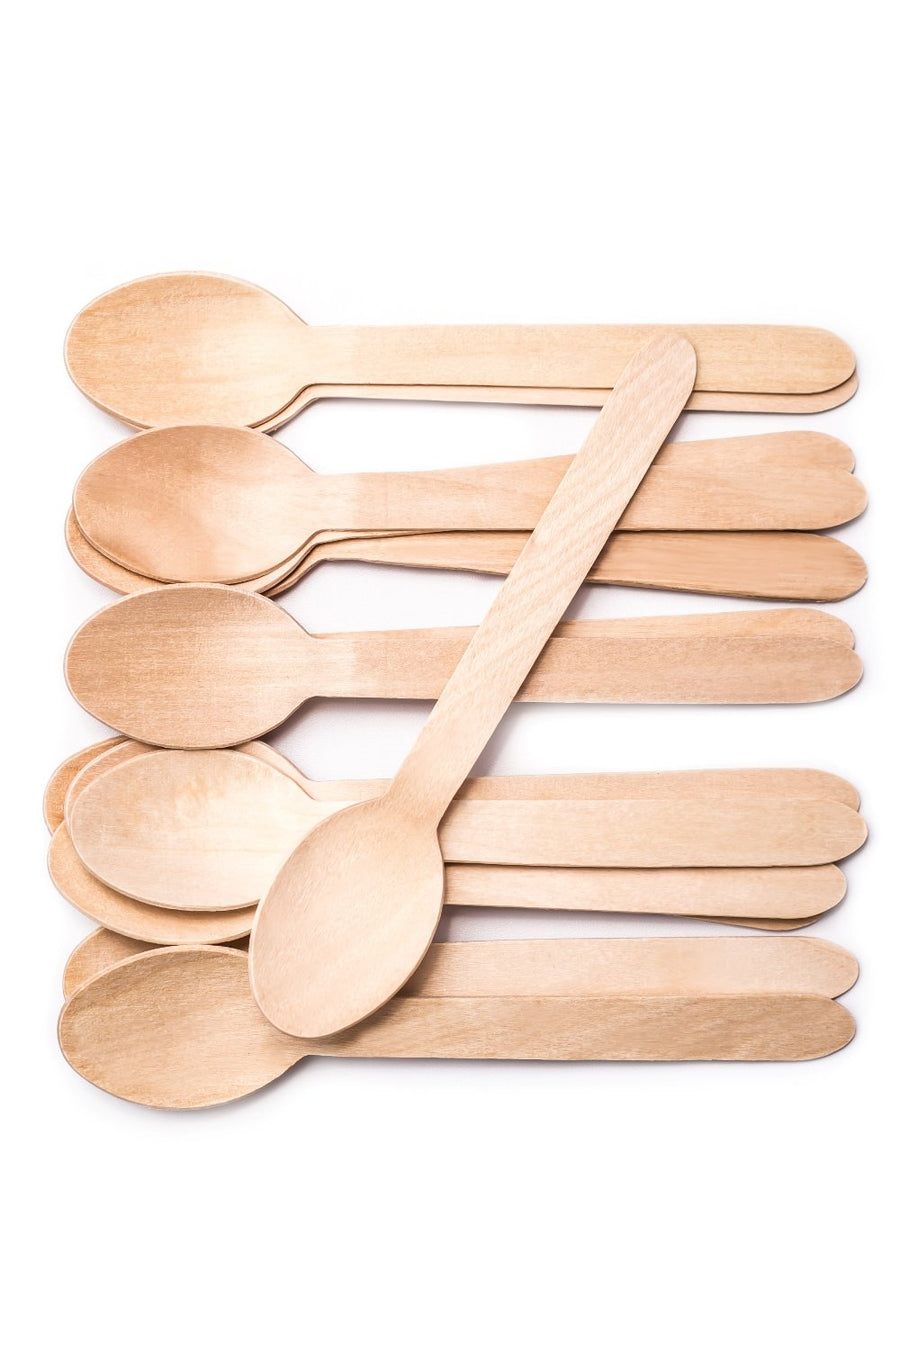 Natural Eco Friendly Disposable Wooden Spoons 100PC